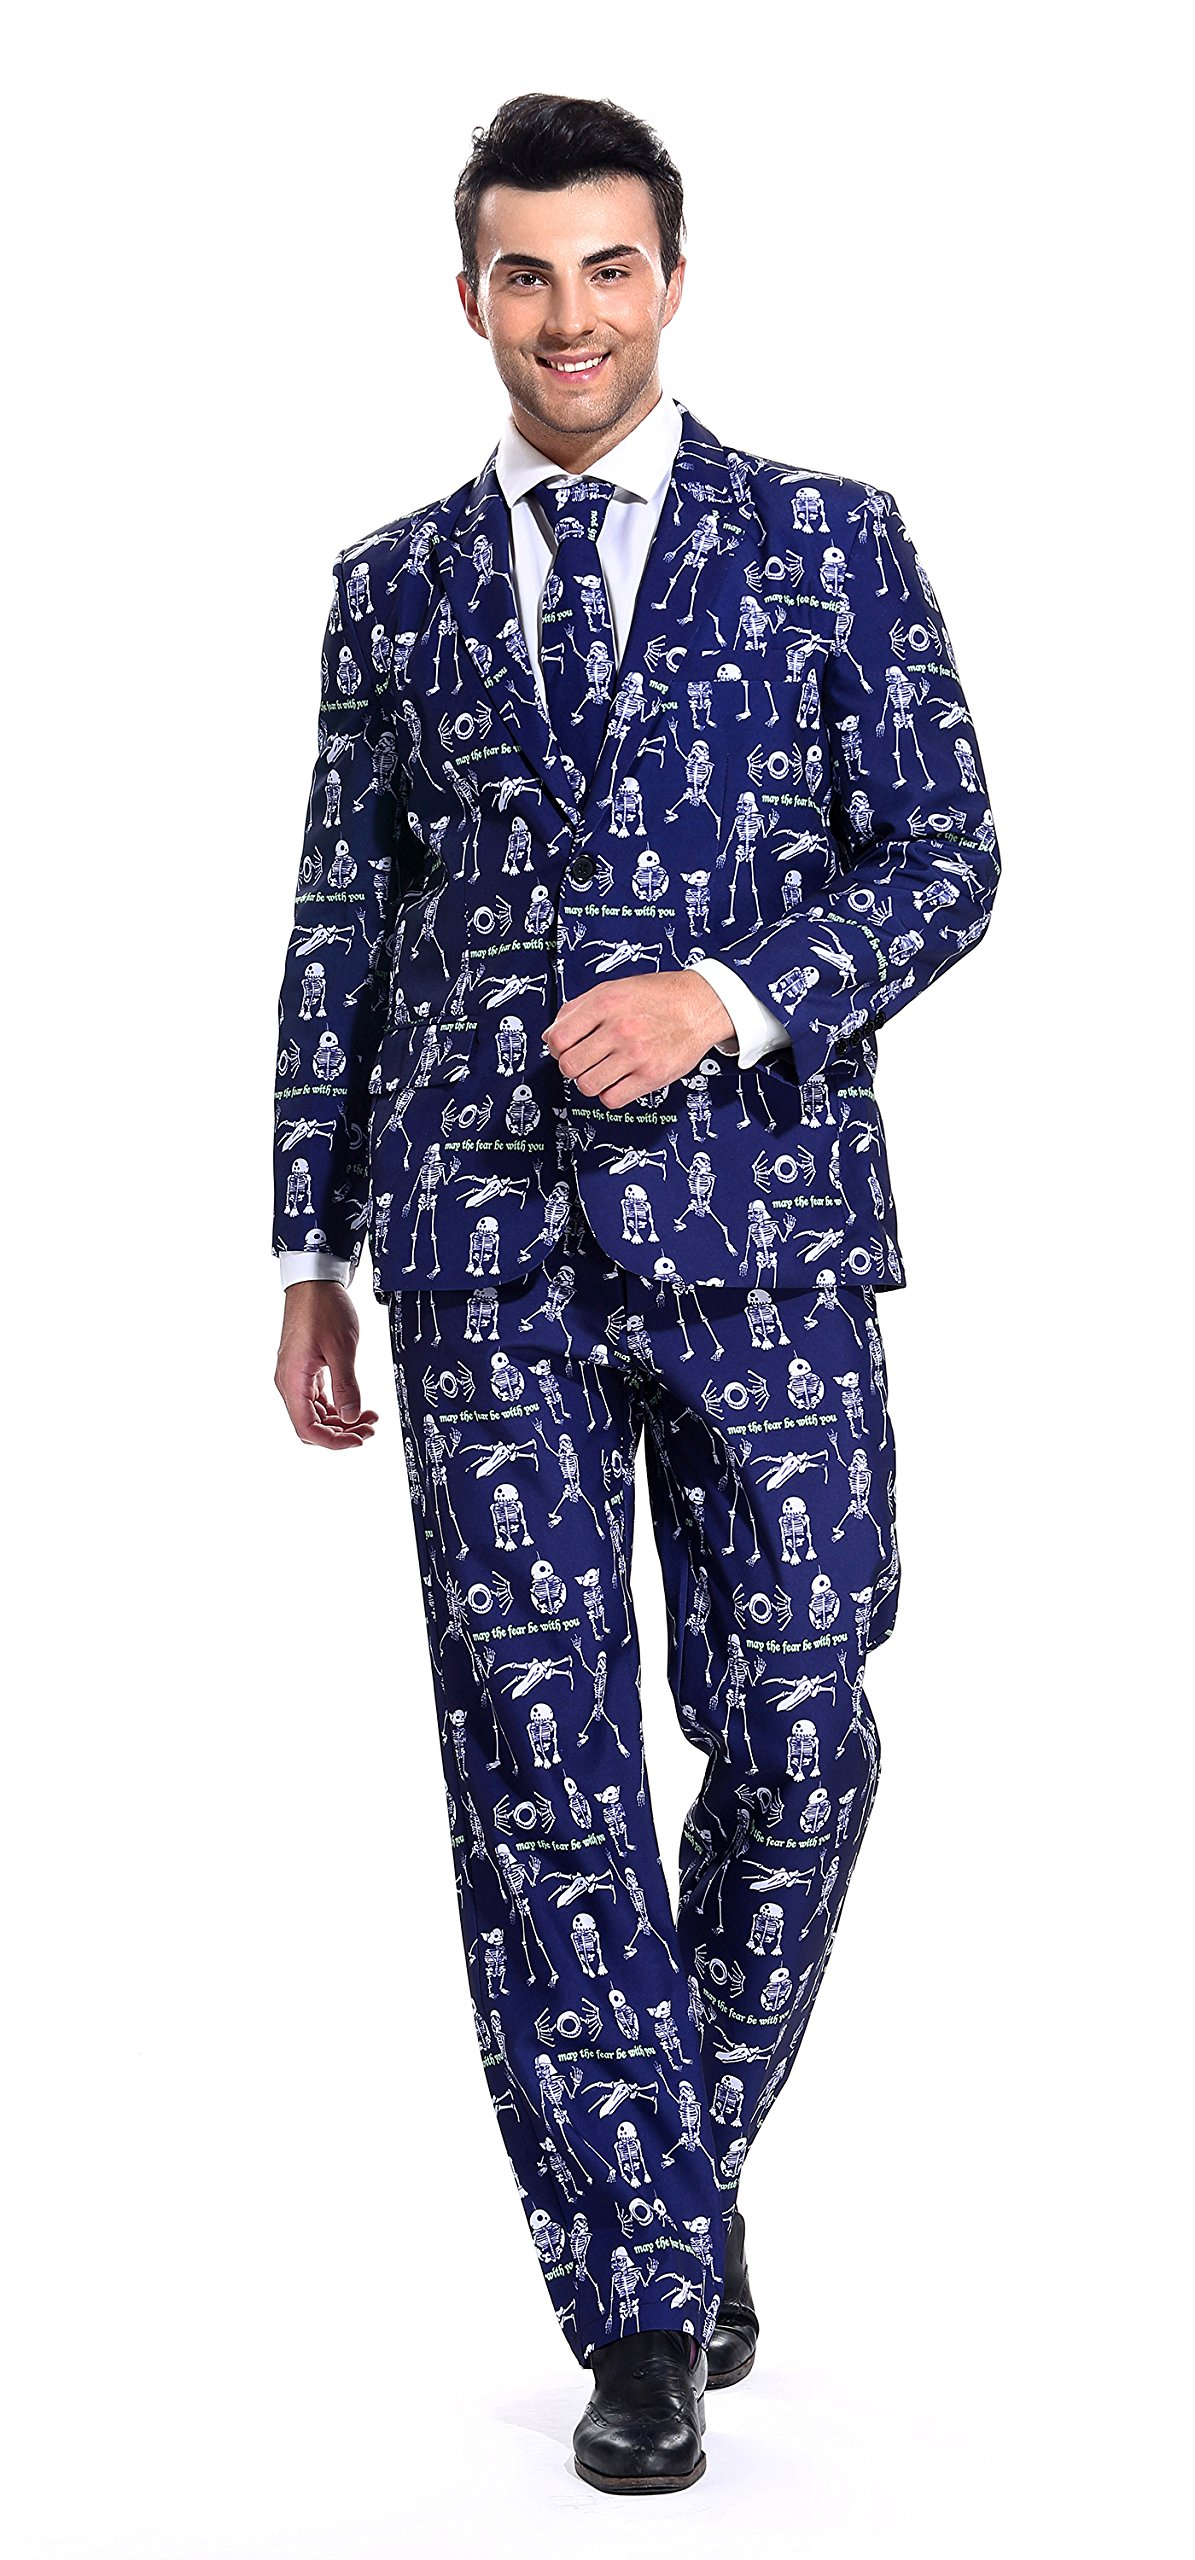 15851932f Galleon - U LOOK UGLY TODAY Mens Bachelor Party Suit Funny Costume Novelty  Xmas Jacket With Tie Blue-X Large